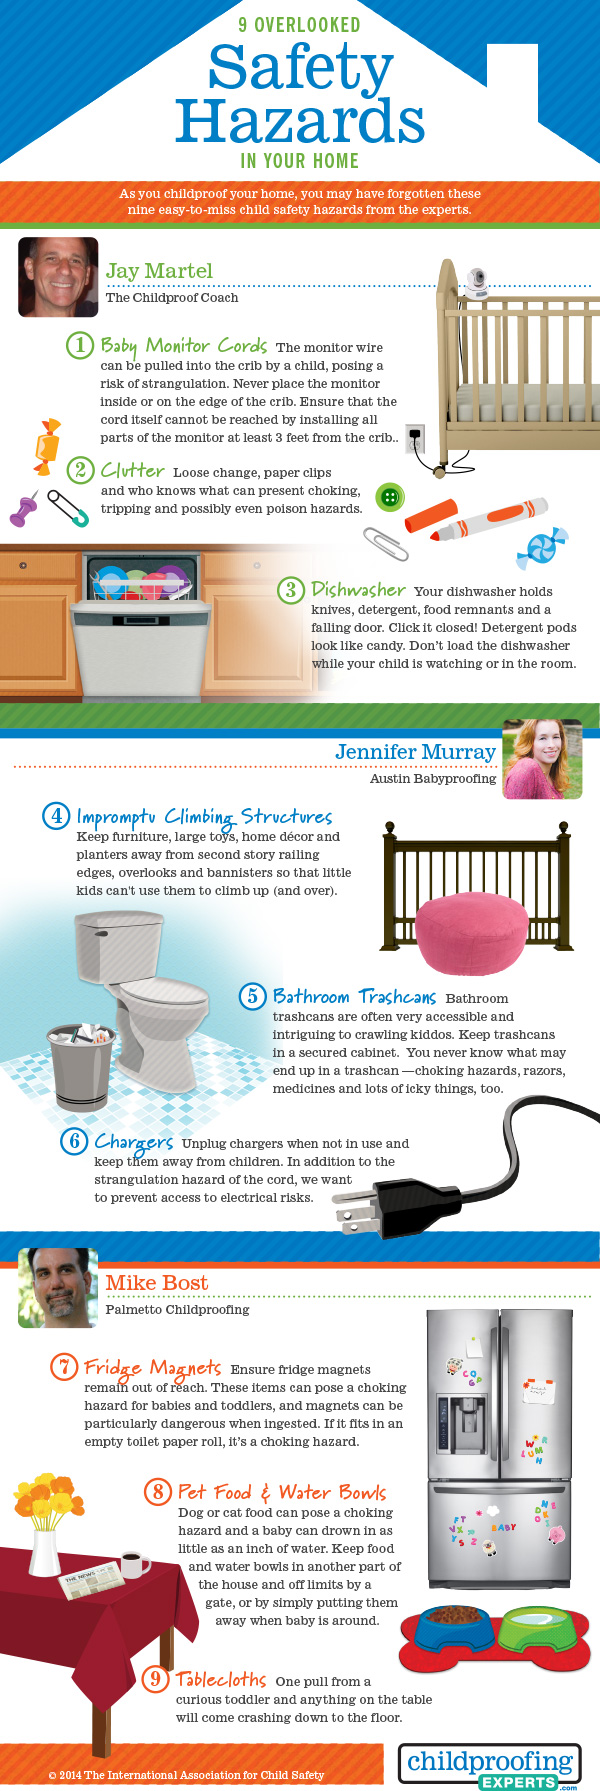 Overlooked Safety Hazards In The Home Childproofingexperts Com